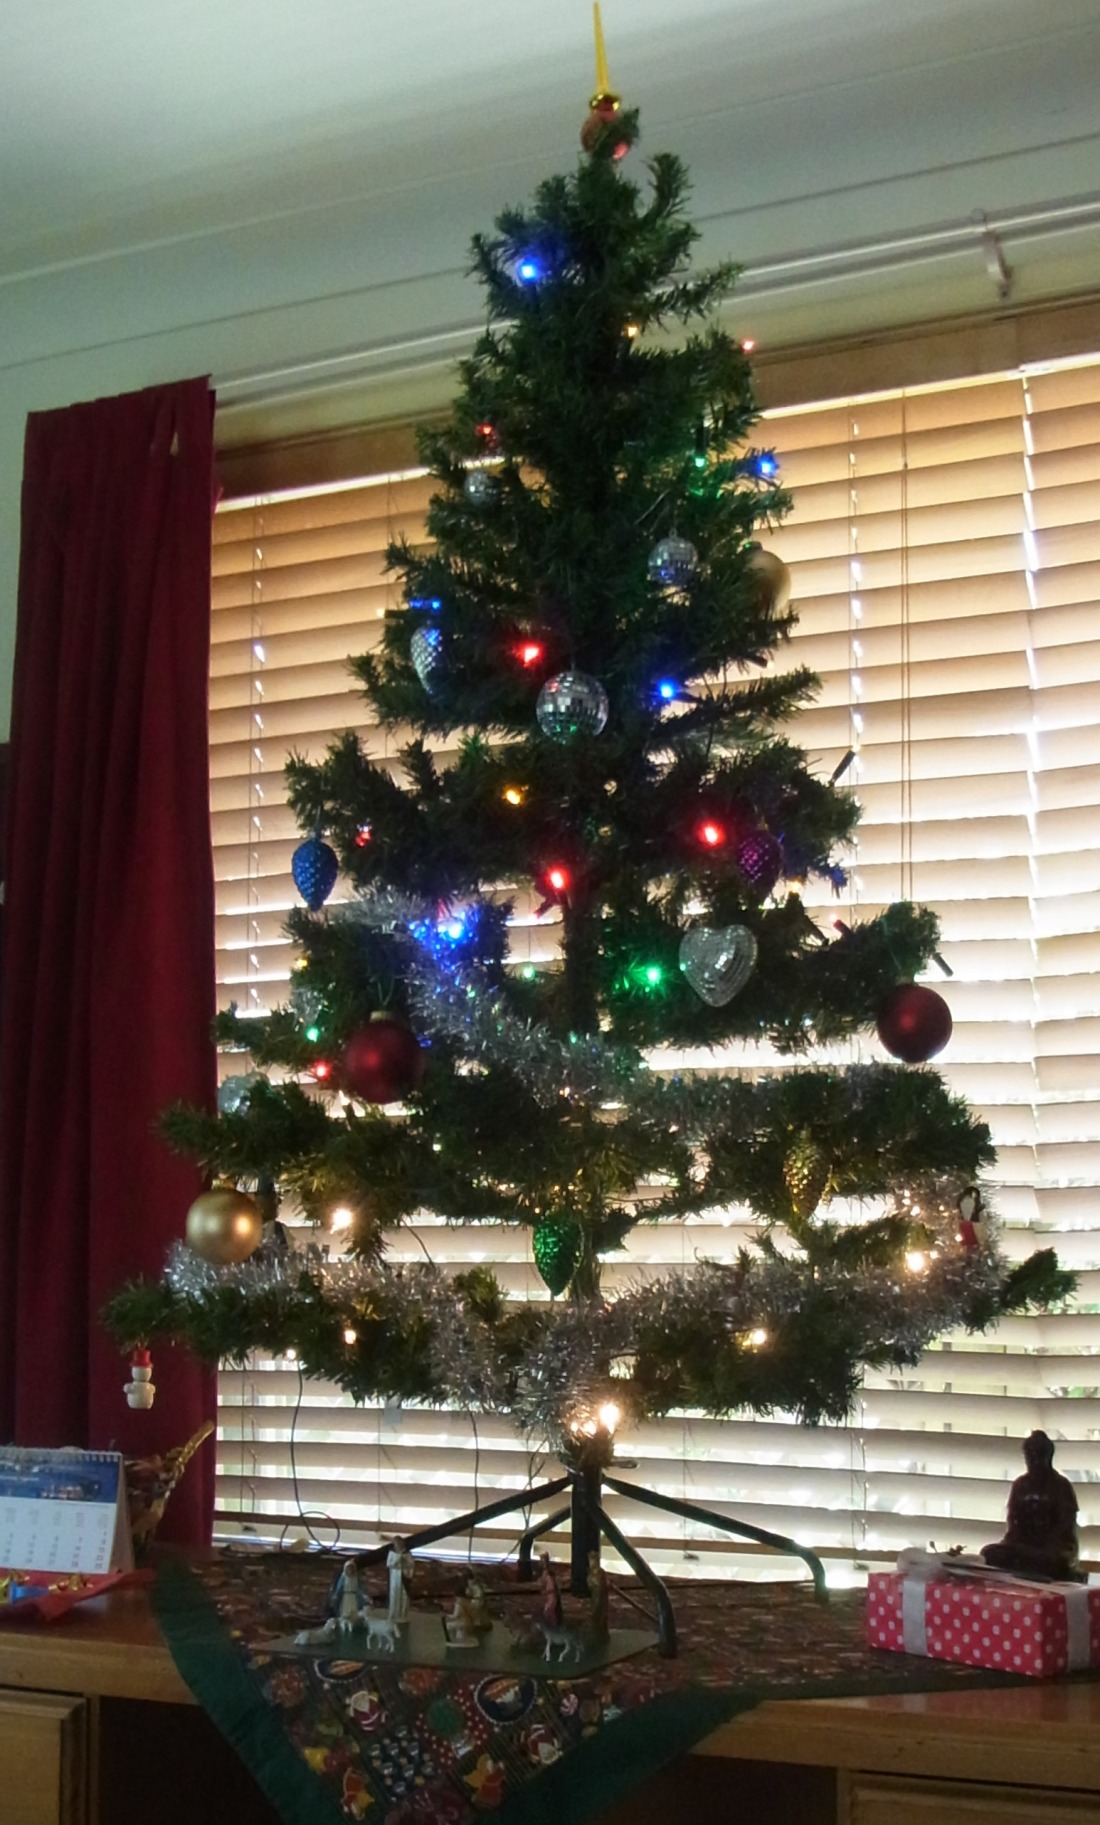 The job is done: We managed putting up the Christmas Tree.